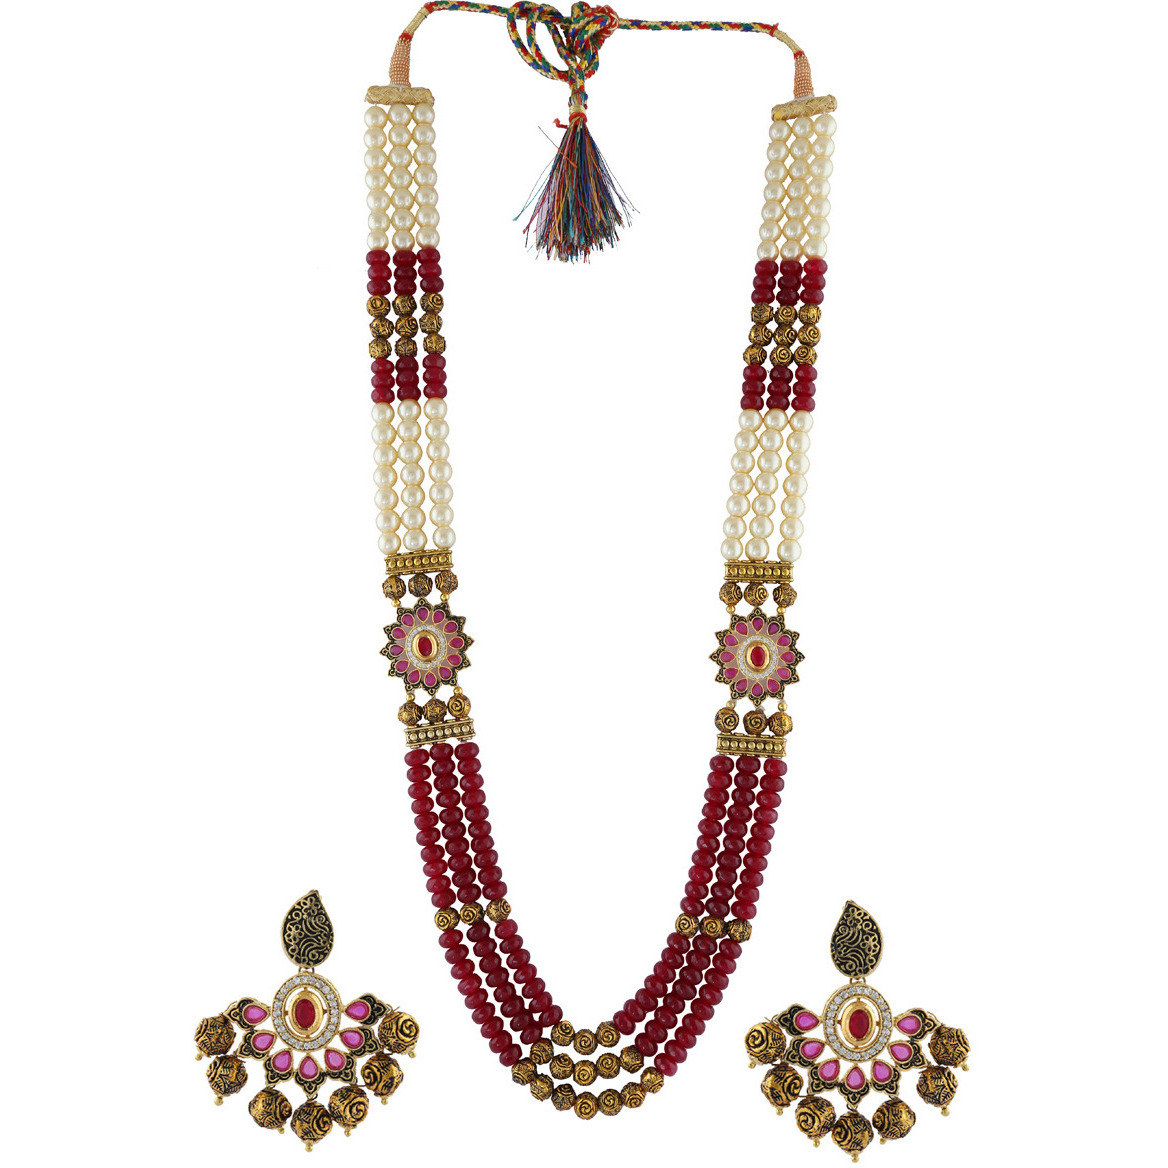 bf2add72d Buy Online Anuradha Art Maroon Colour Designer Wonderful Classy Traditional  Long Necklace Set For Women Girls from USA - Zifiti.com - Page